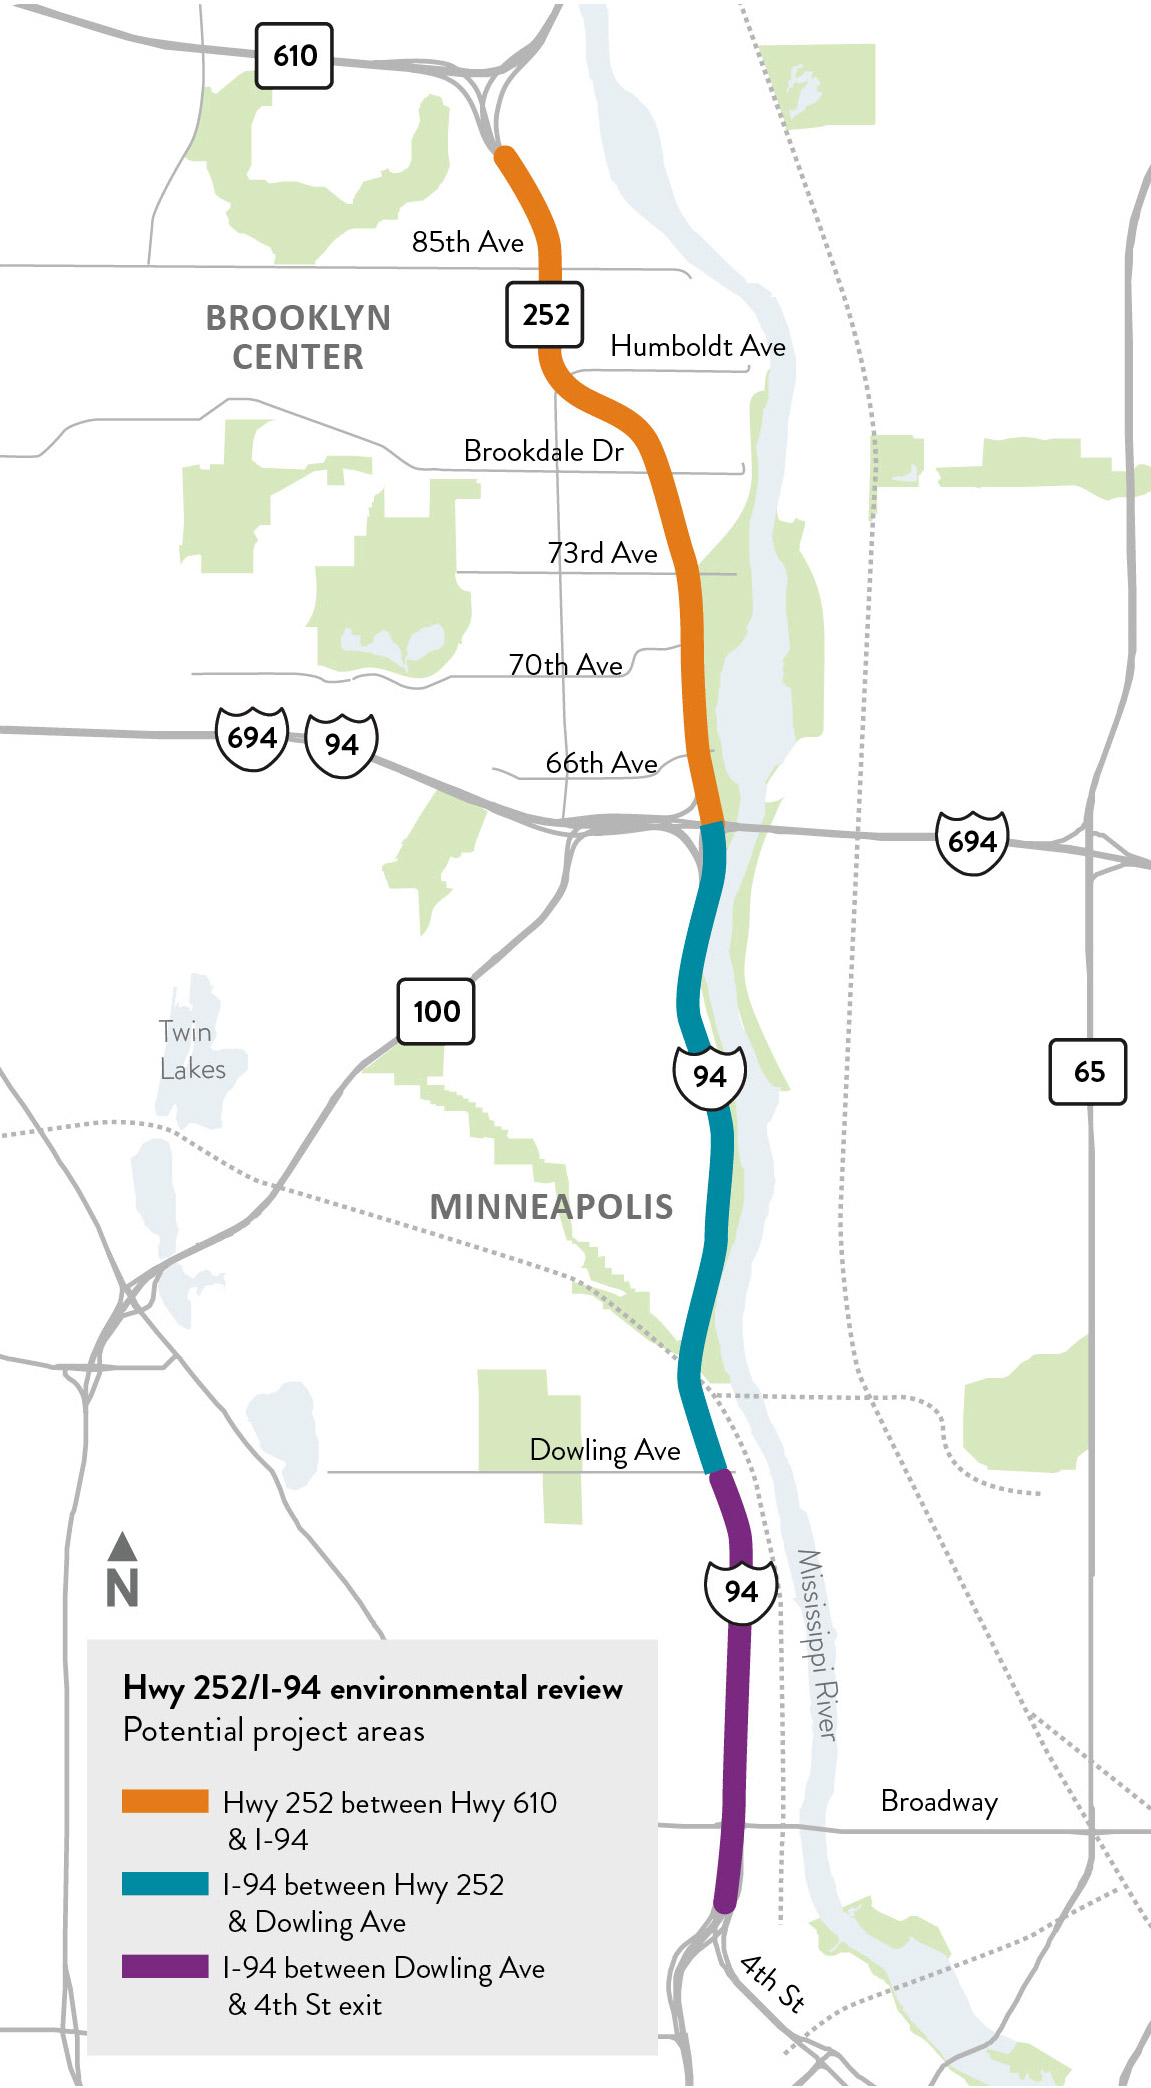 Highway 252/I-94 study area map in Brooklyn Center, Brooklyn Park and Minneapolis